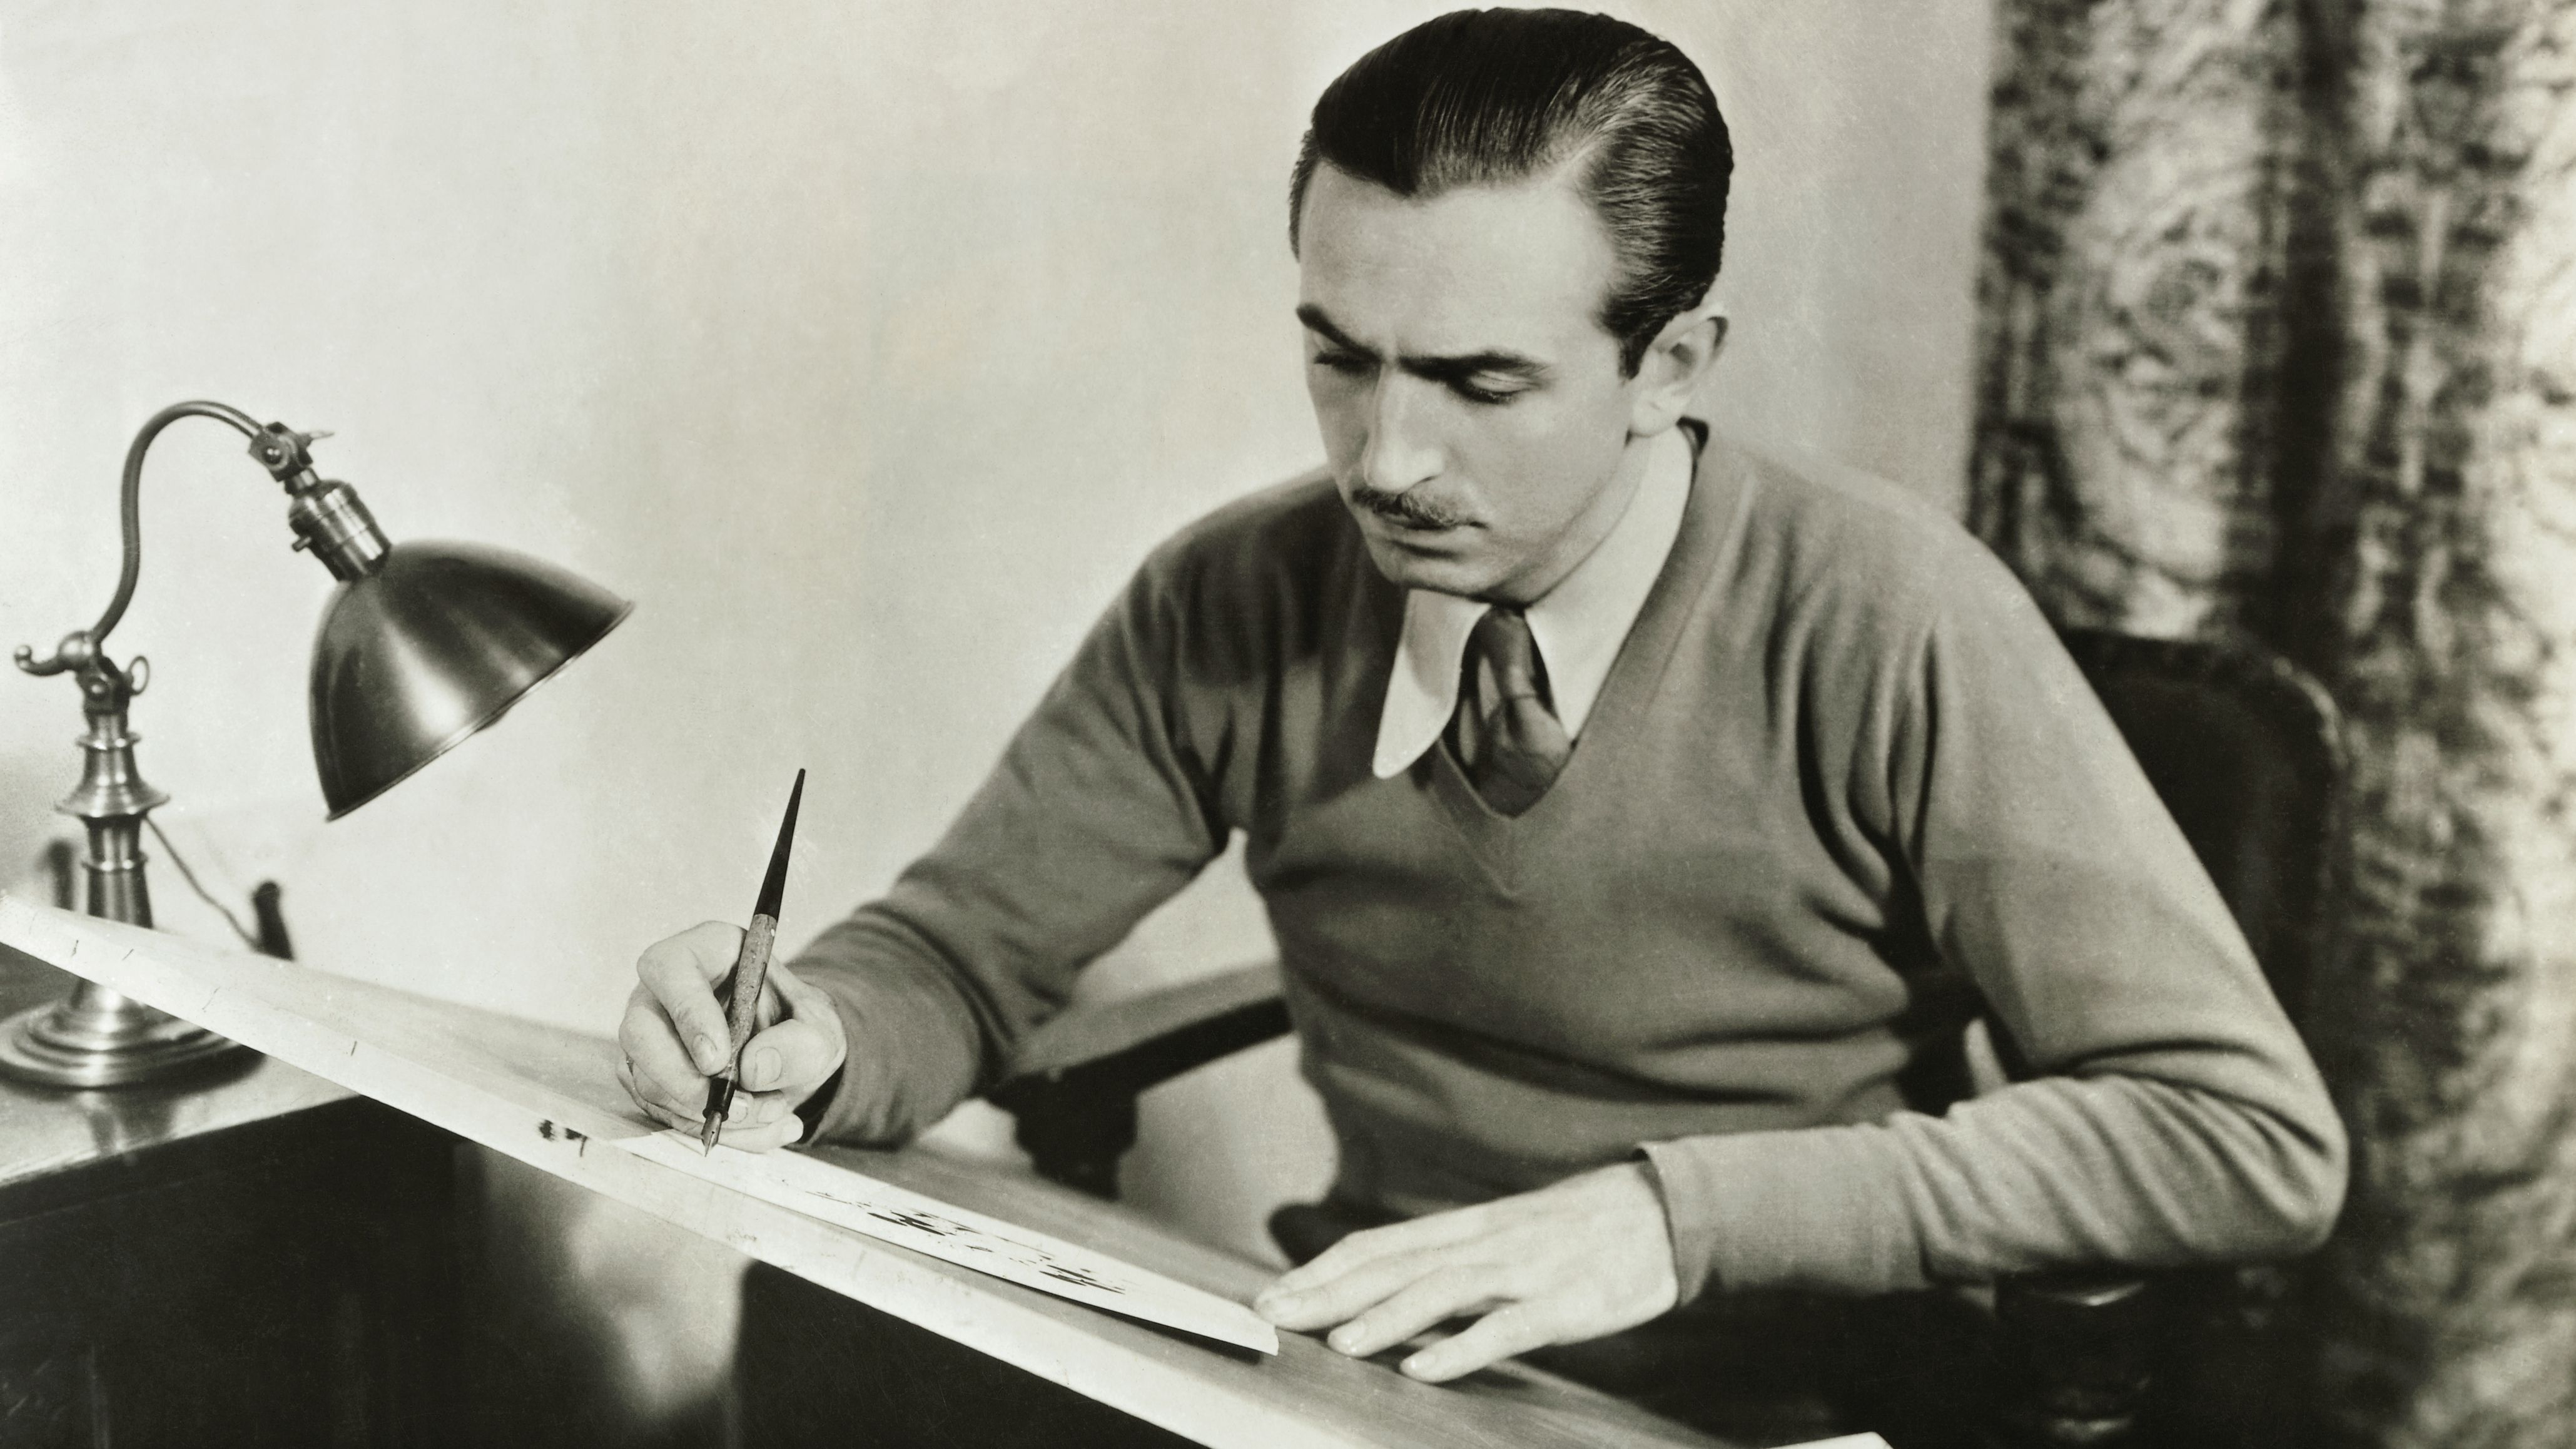 Biography Of Walt Disney Animator And Film Producer